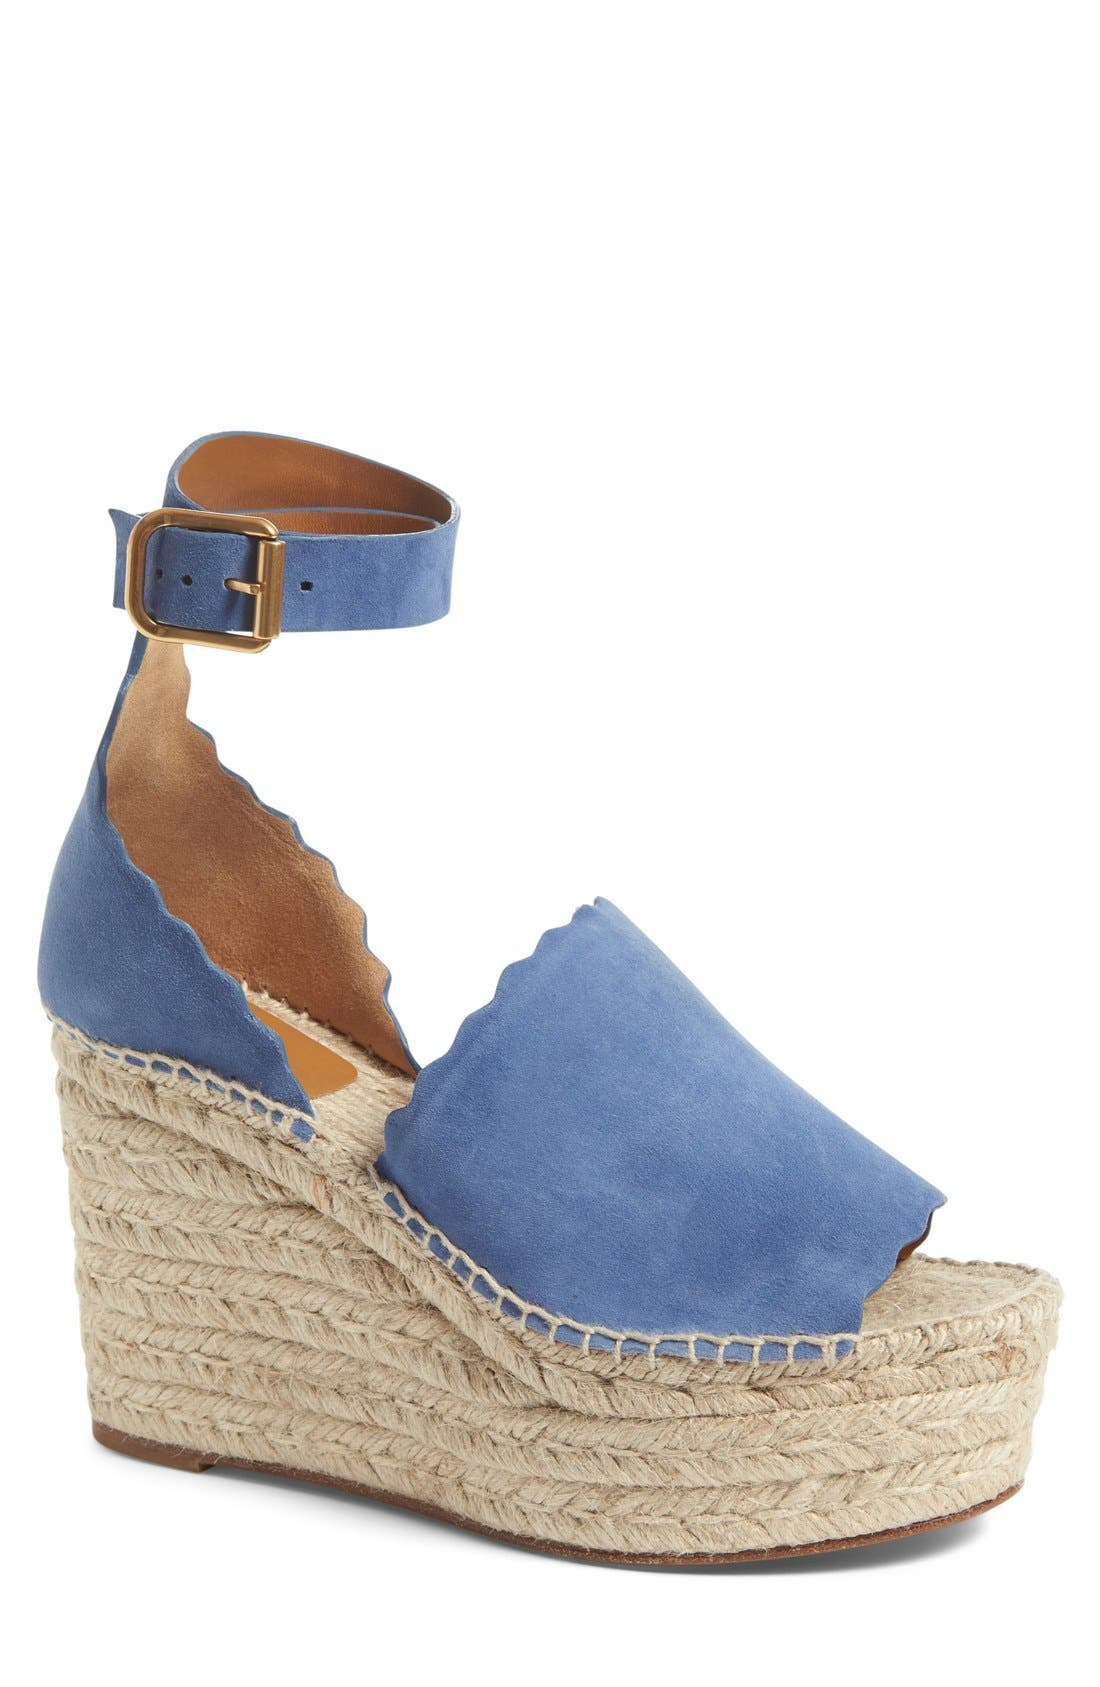 Chloé Lauren Espadrille Wedge Sandal (Women)